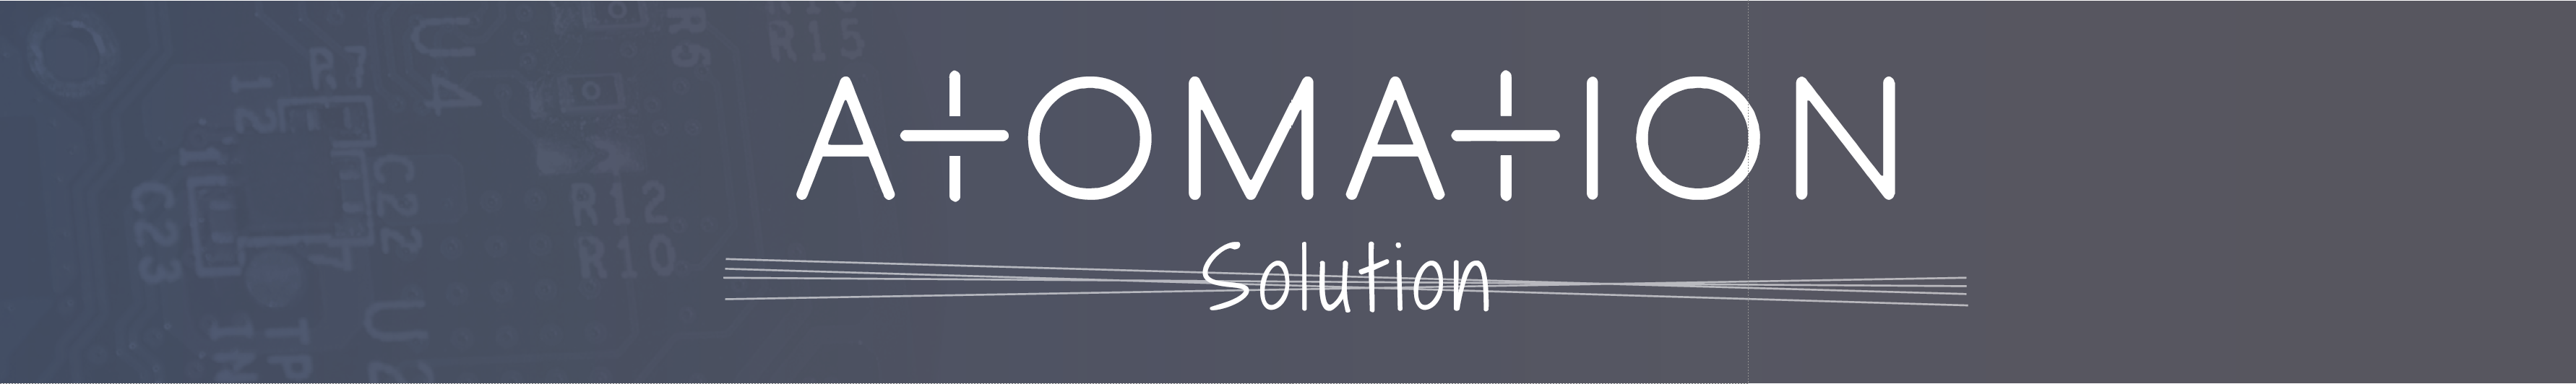 Atomation Solution